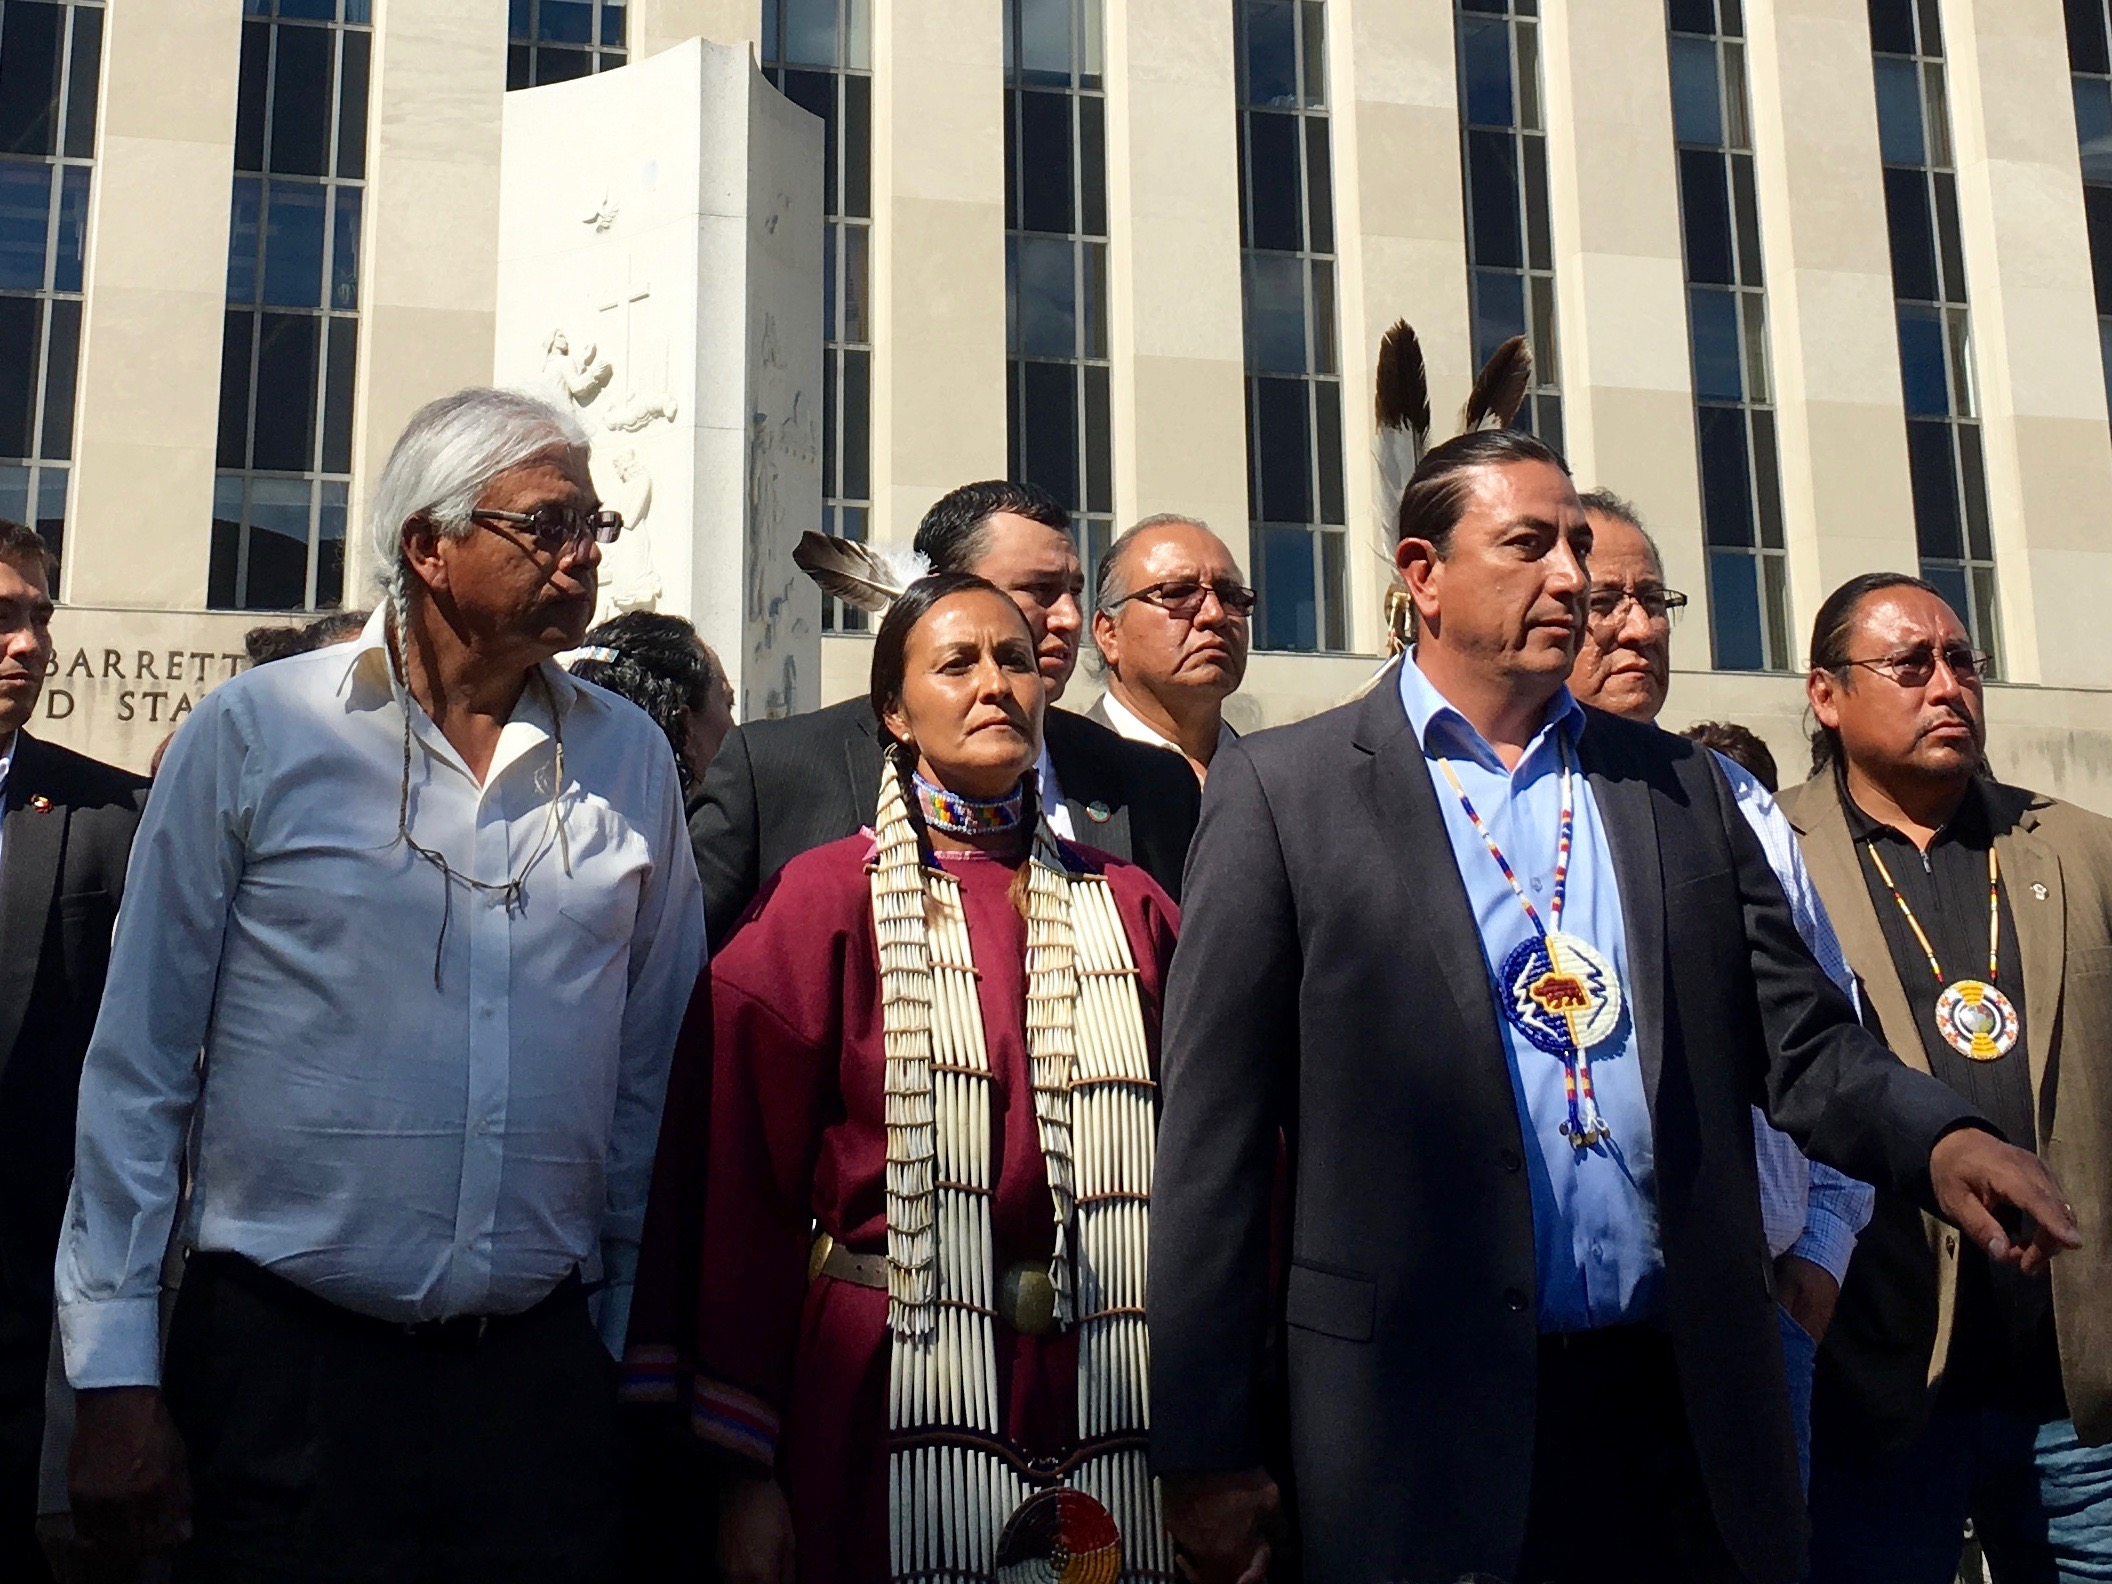 Tribes and Dakota Access headed back to court for #NoDAPL hearing in D.C.